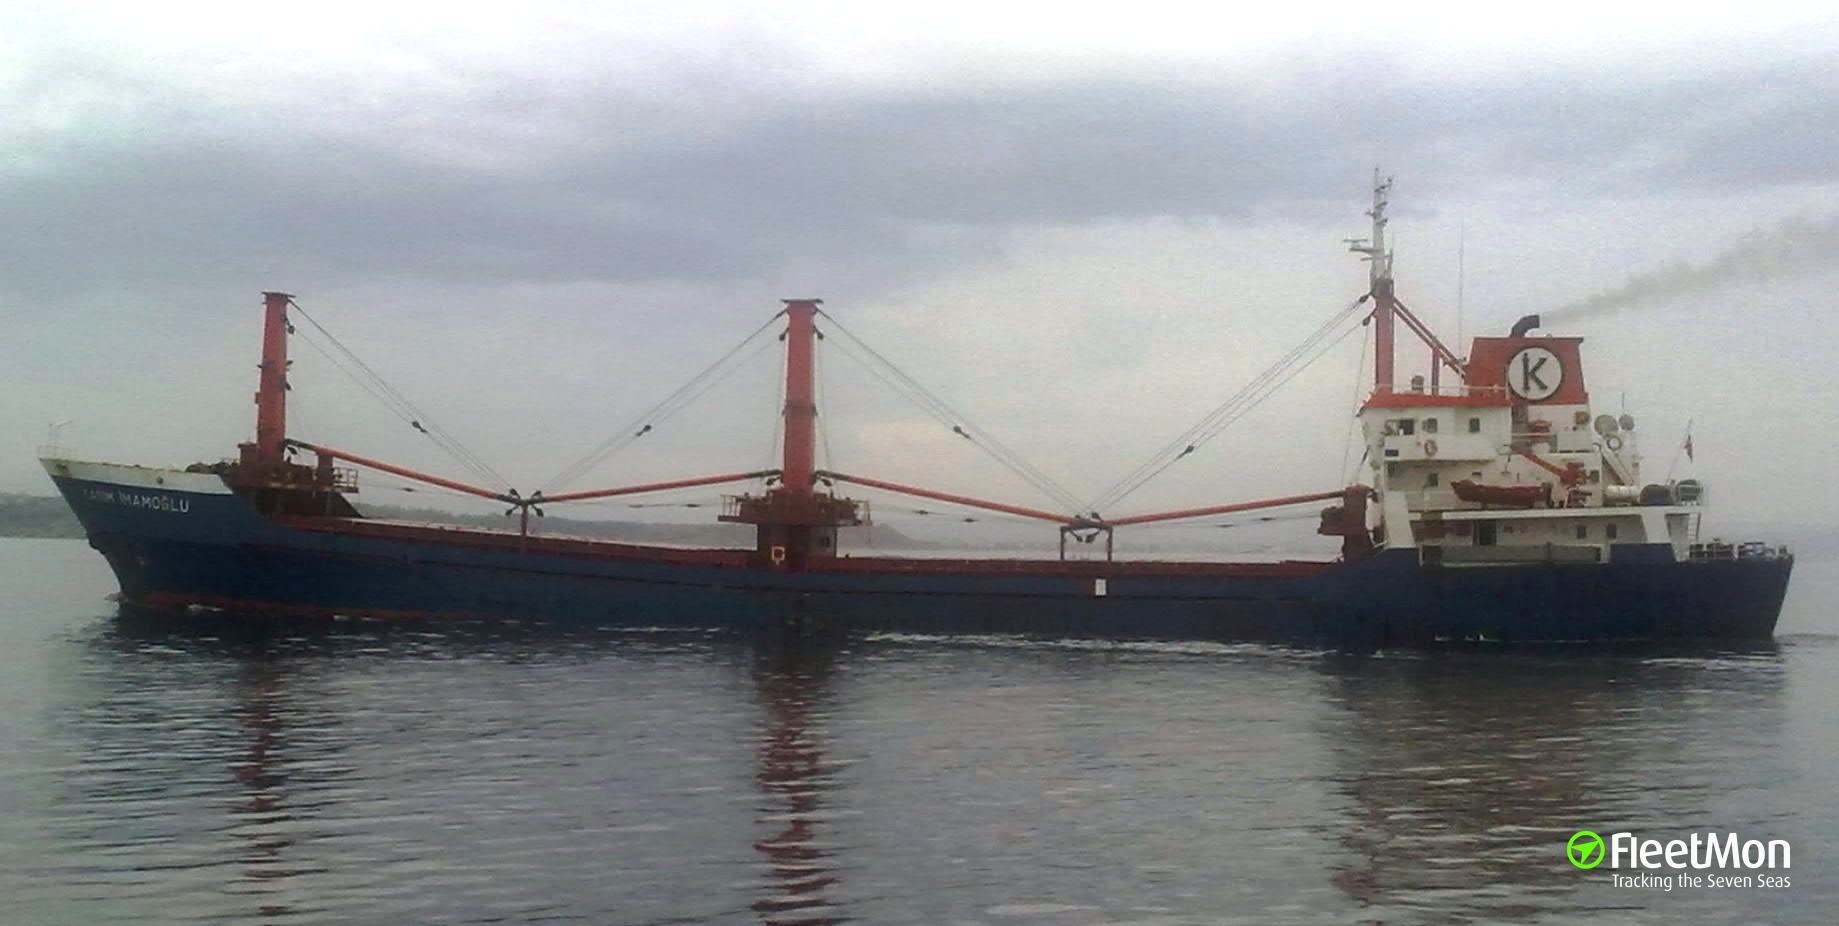 Greek attempt to intercept Turkish freighter is a shame to be condemned